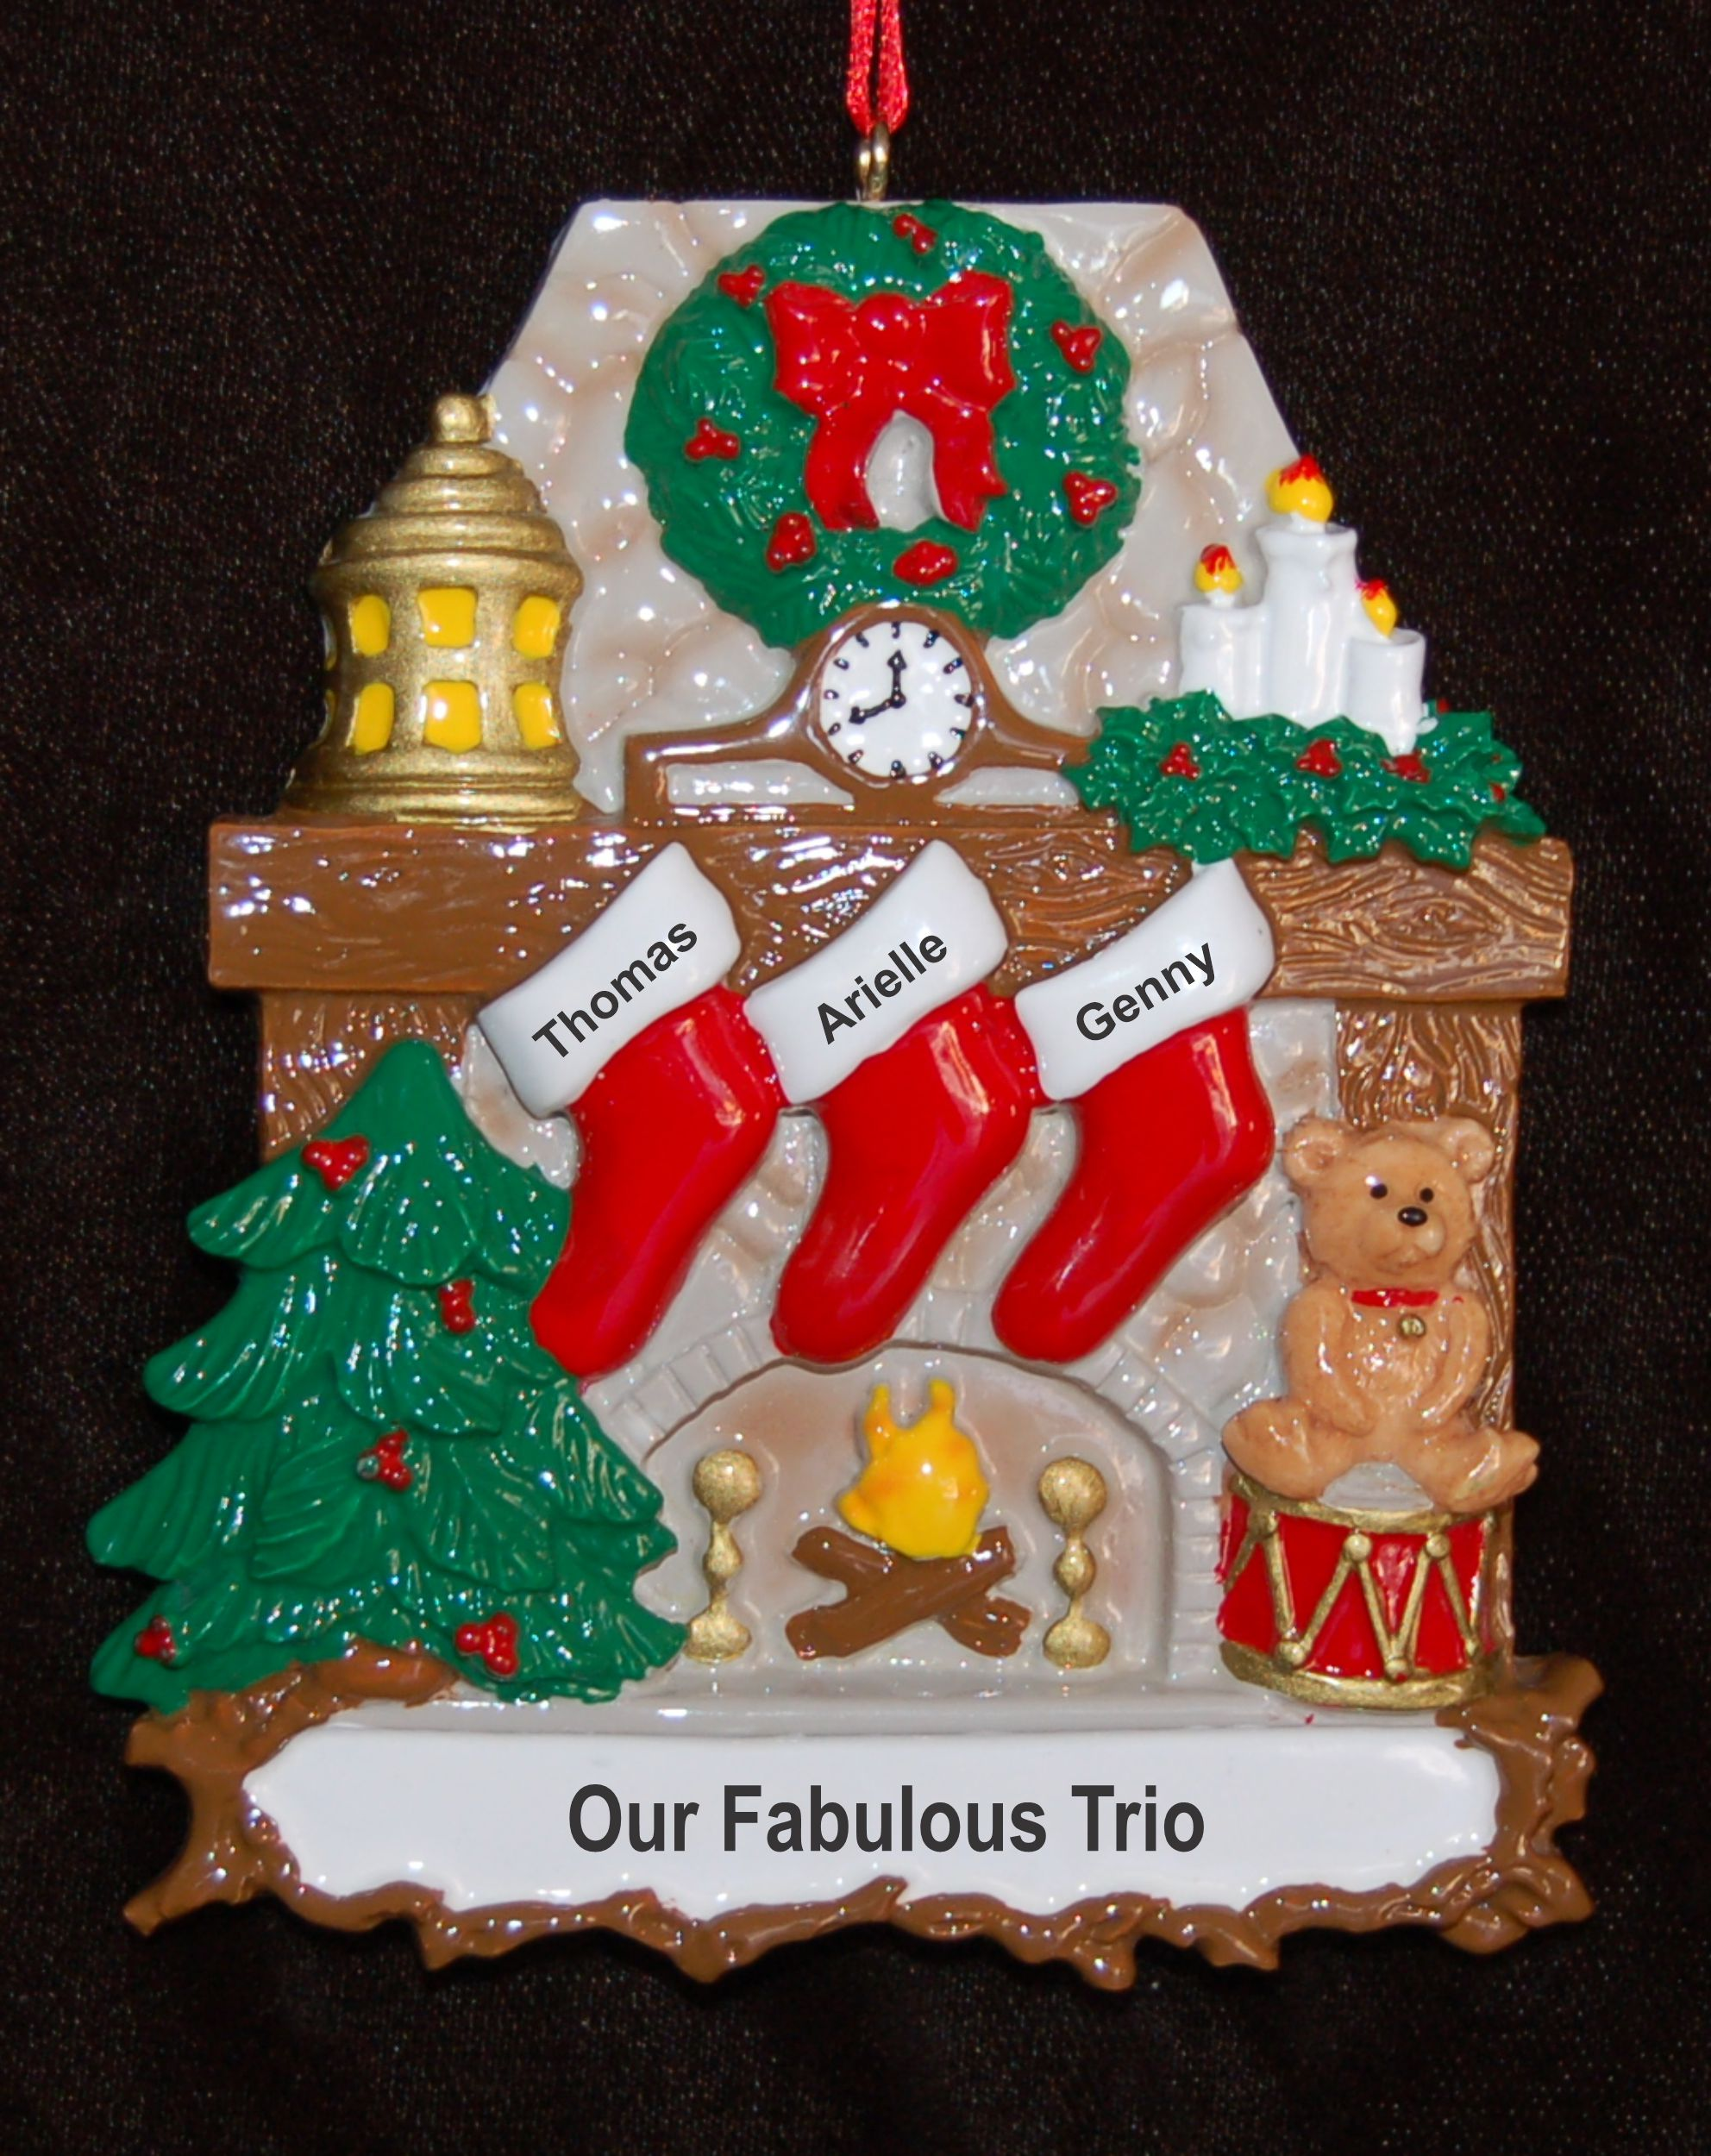 Personalized Fanily Christmas Ornament Stone Fireplace 3 Kids by Russell Rhodes